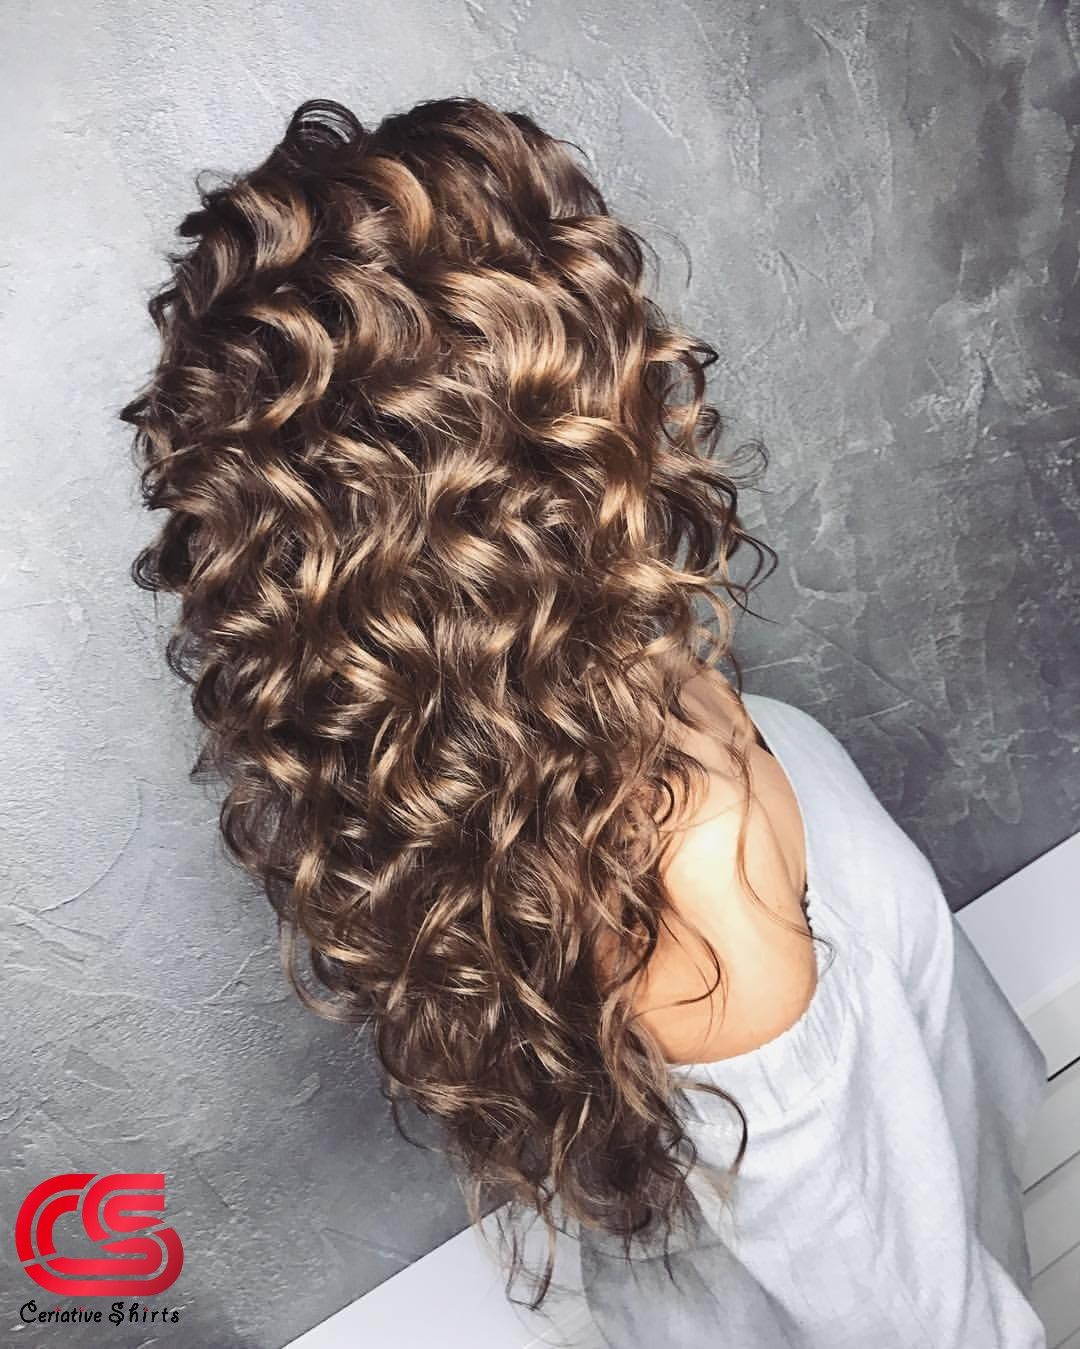 Cute hairstyles ideas trendy hairstyles latest hair color hair